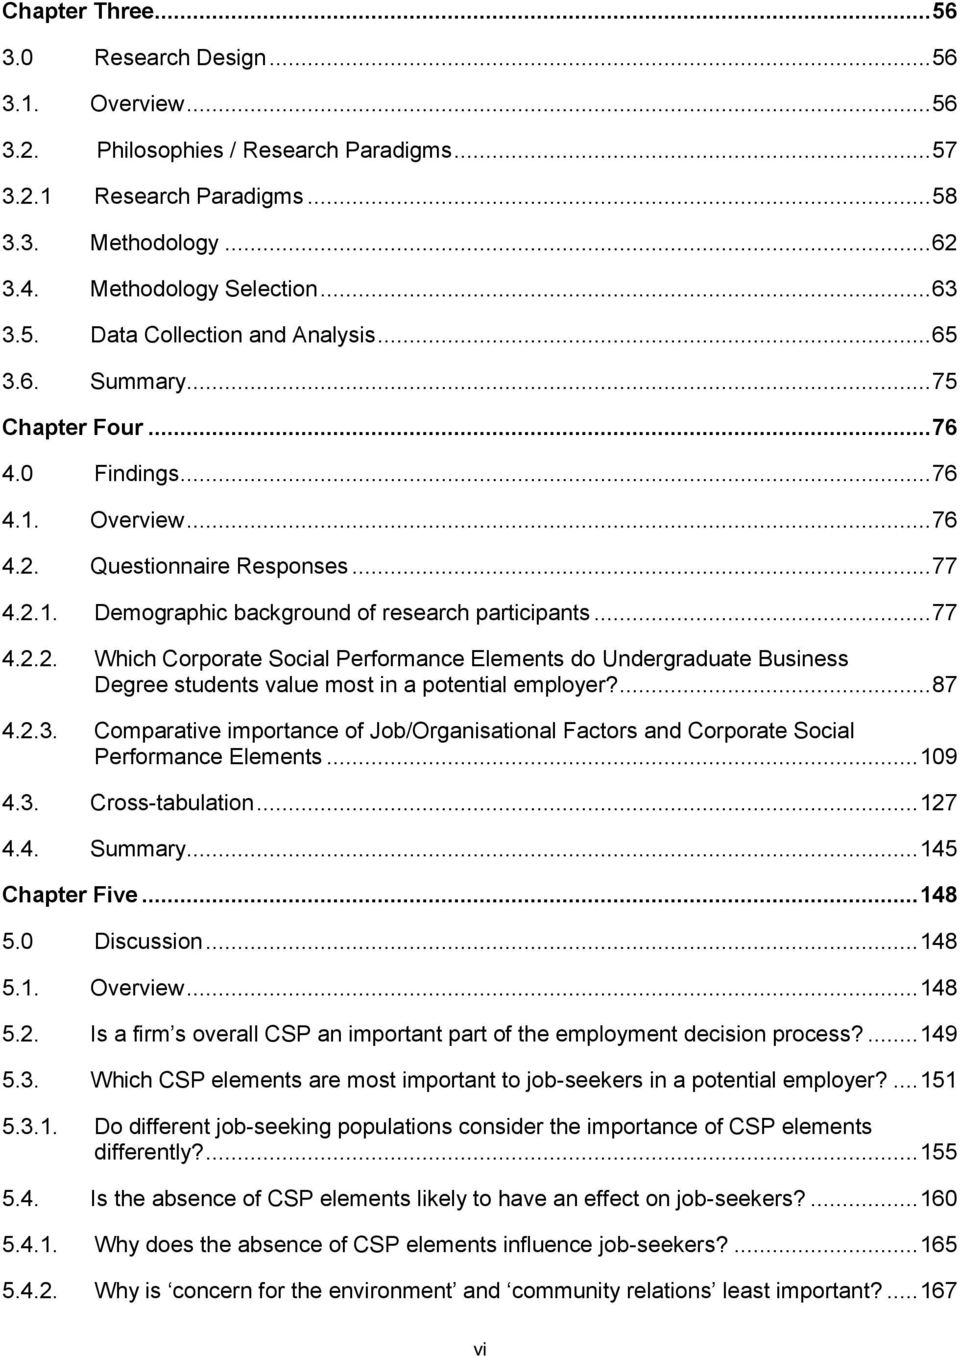 .. 77 4.2.2. Which Corporate Social Performance Elements do Undergraduate Business Degree students value most in a potential employer?... 87 4.2.3.